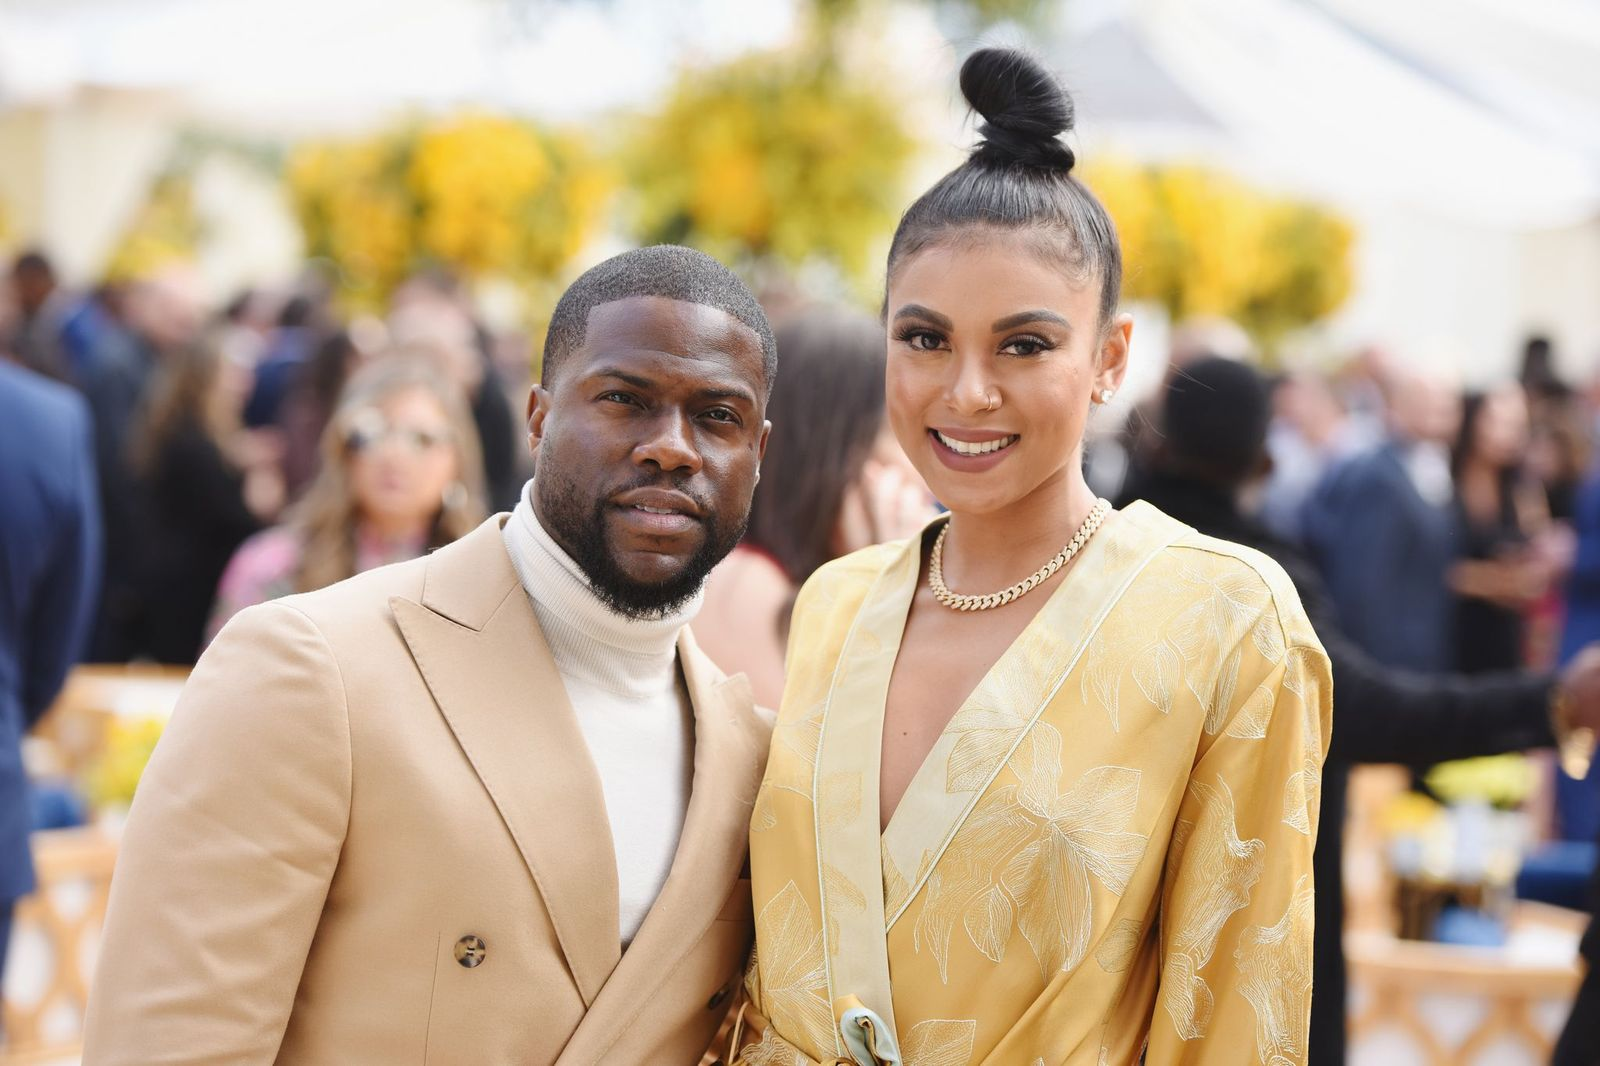 """Kevin Hart and Eniko Parrish at Roc Nation's """"The Brunch"""" on February 9, 2019.   Photo: Getty Images"""